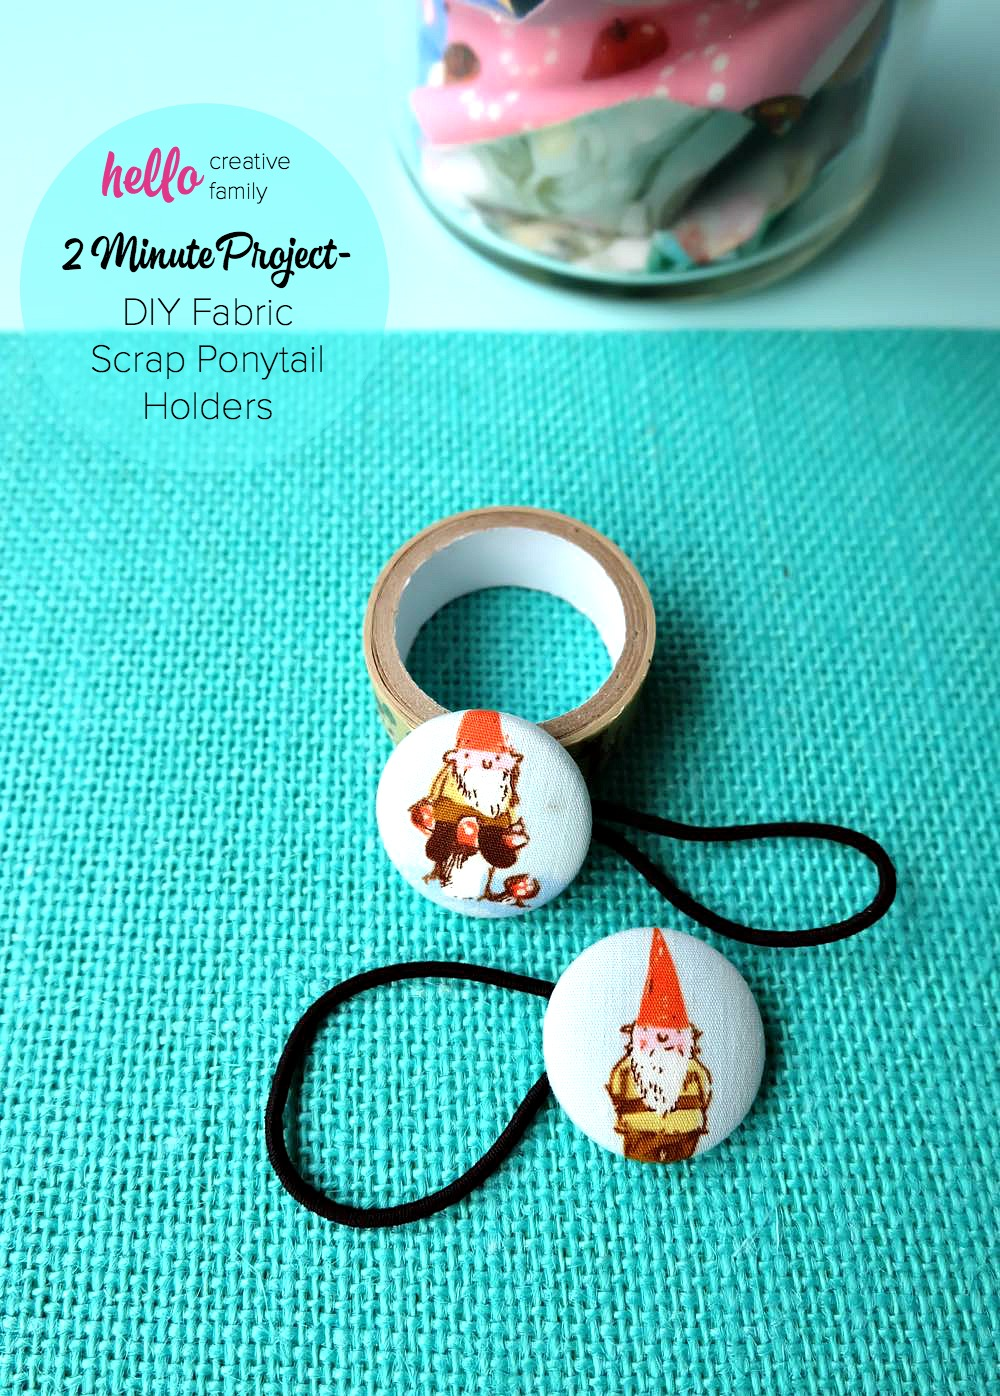 Pull out those fabric scraps! This fun project takes 2 minutes to make and is a fun, easy and inexpensive handmade gift idea! Learn how to make DIY Fabric Scrap Ponytail Holders with this tutorial that has step by step photos! Perfect for stocking stuffers or a $5.00 or less gift!